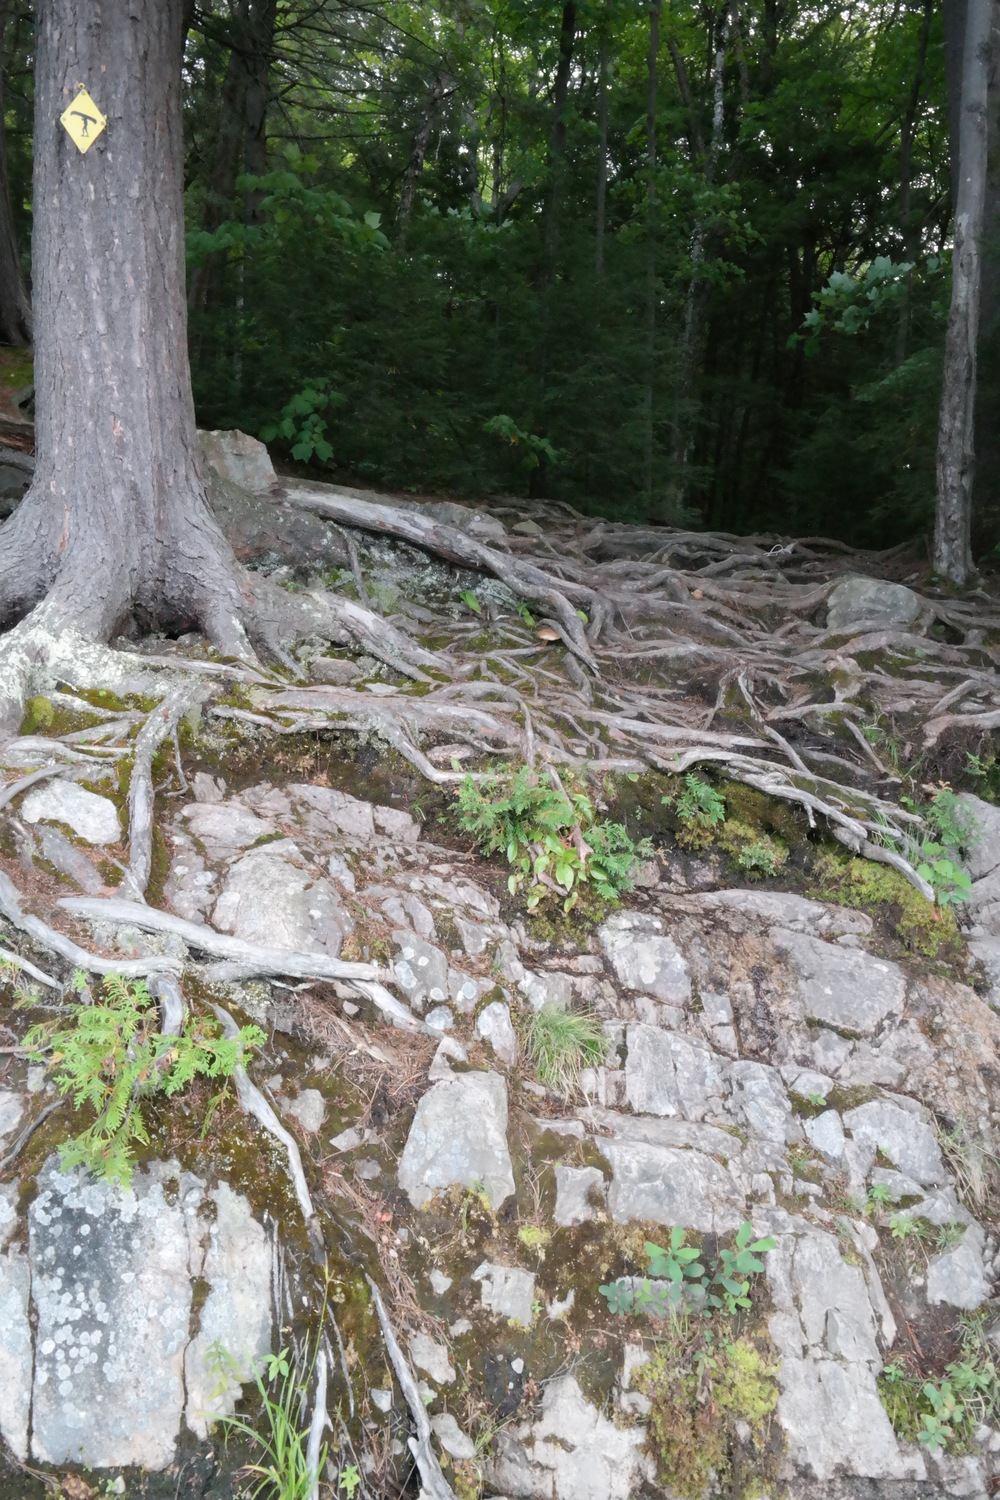 Steep portage. Awesome roots.